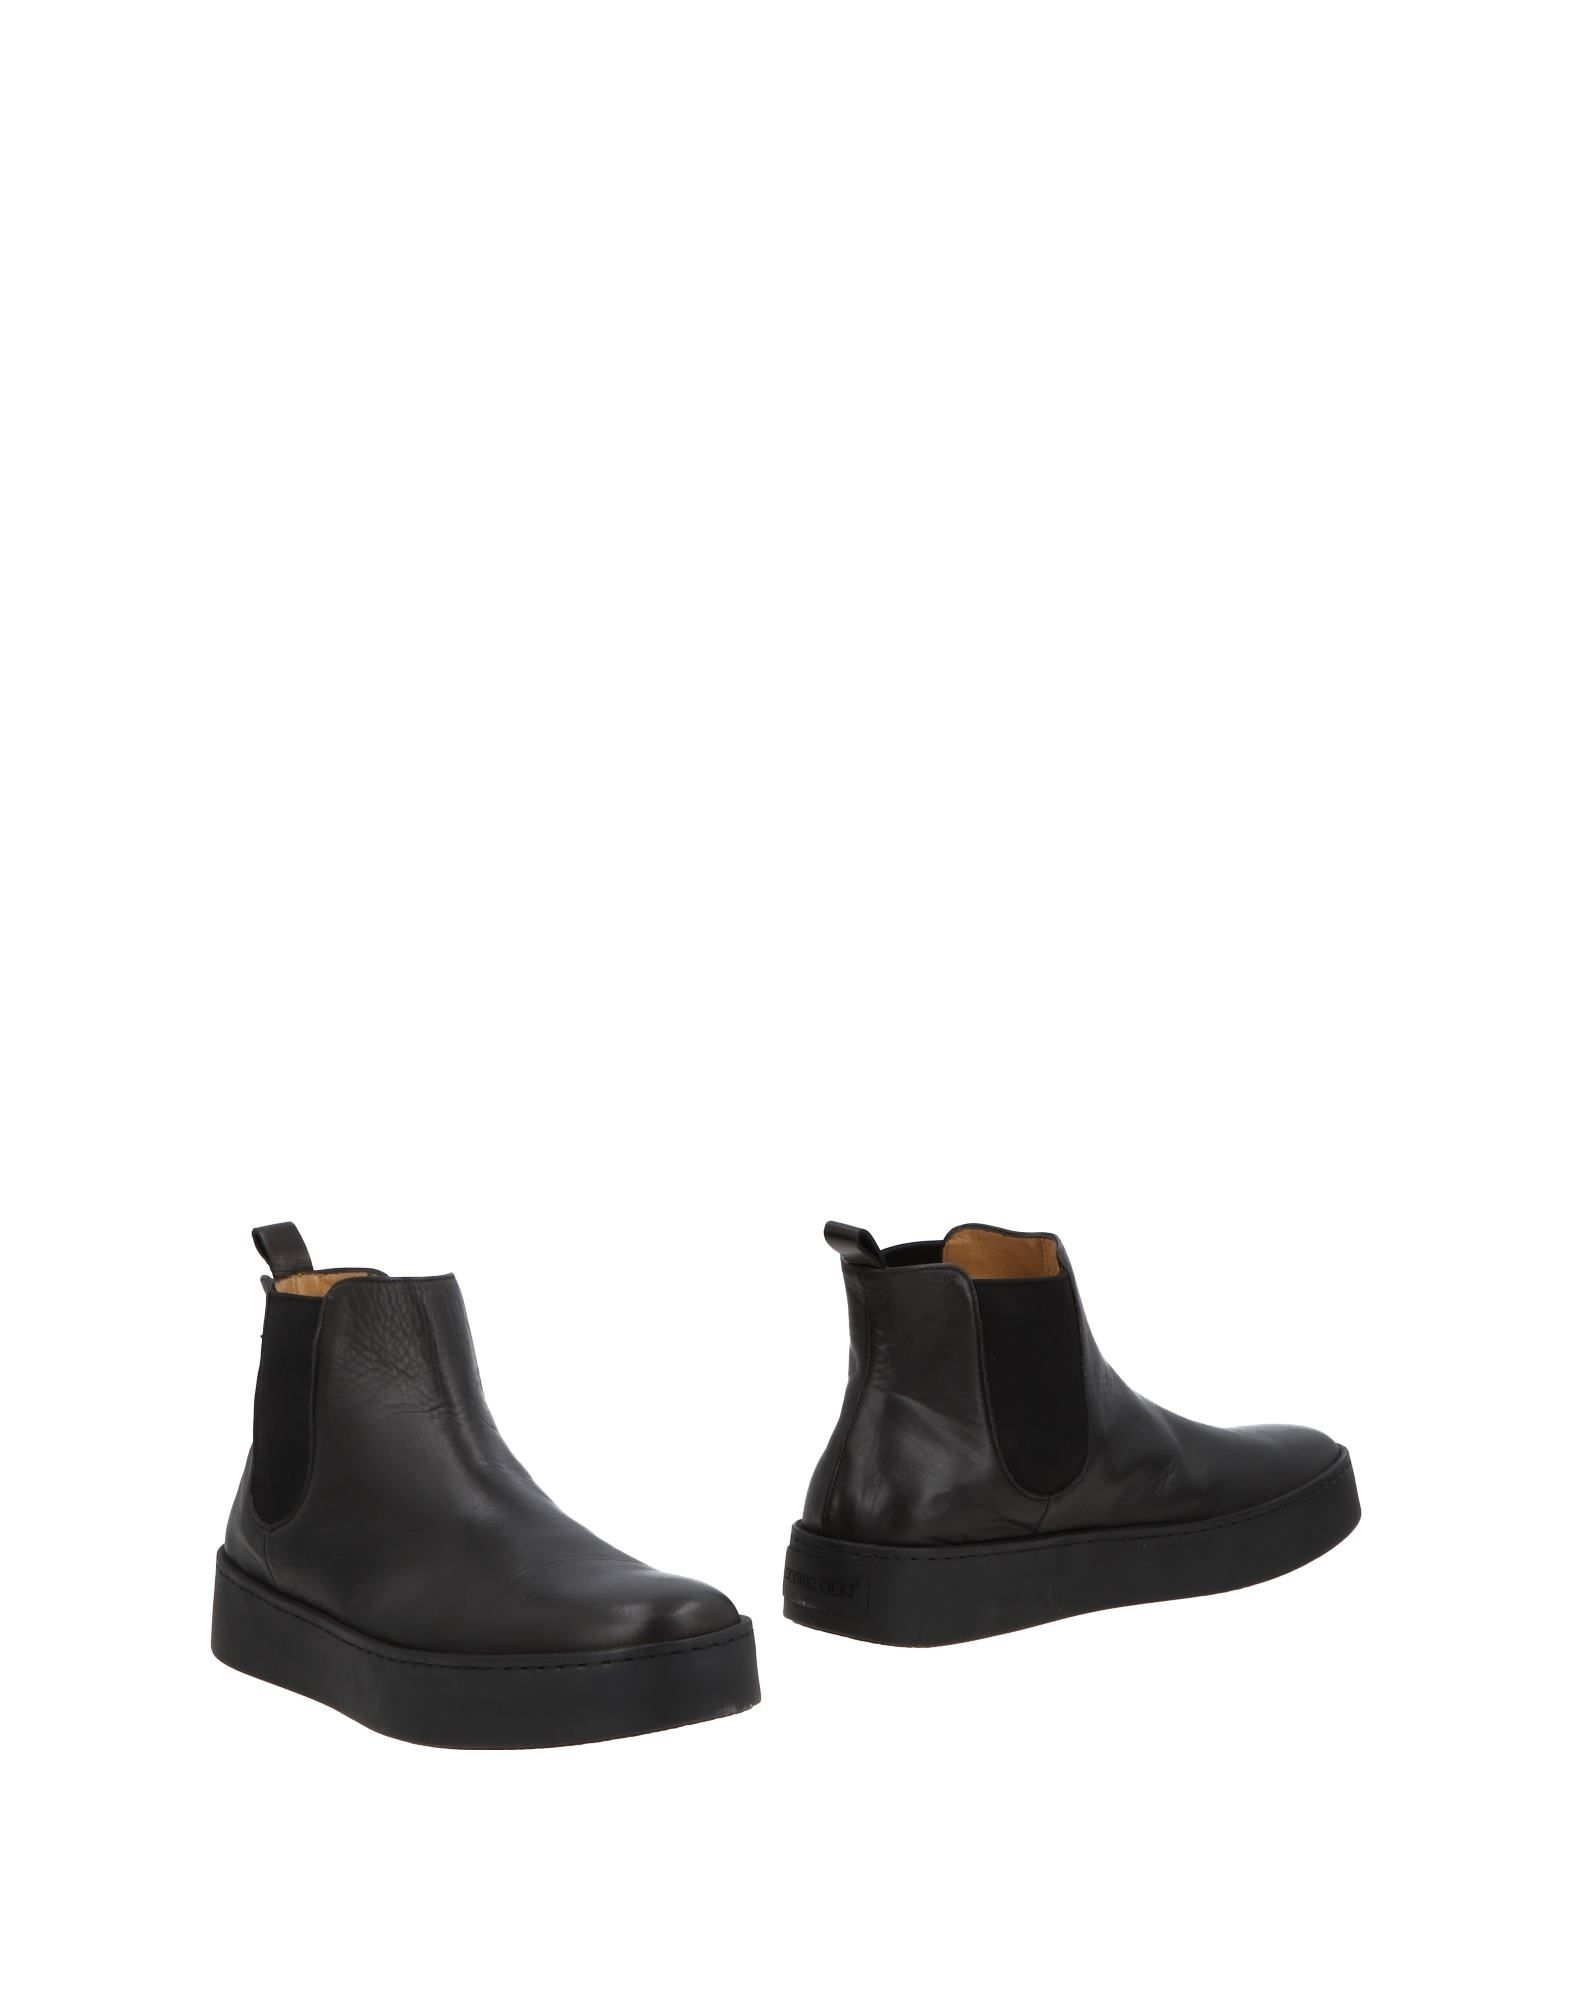 Pomme D'or Chelsea Boots 11497466PV Damen  11497466PV Boots Neue Schuhe 54c8f4